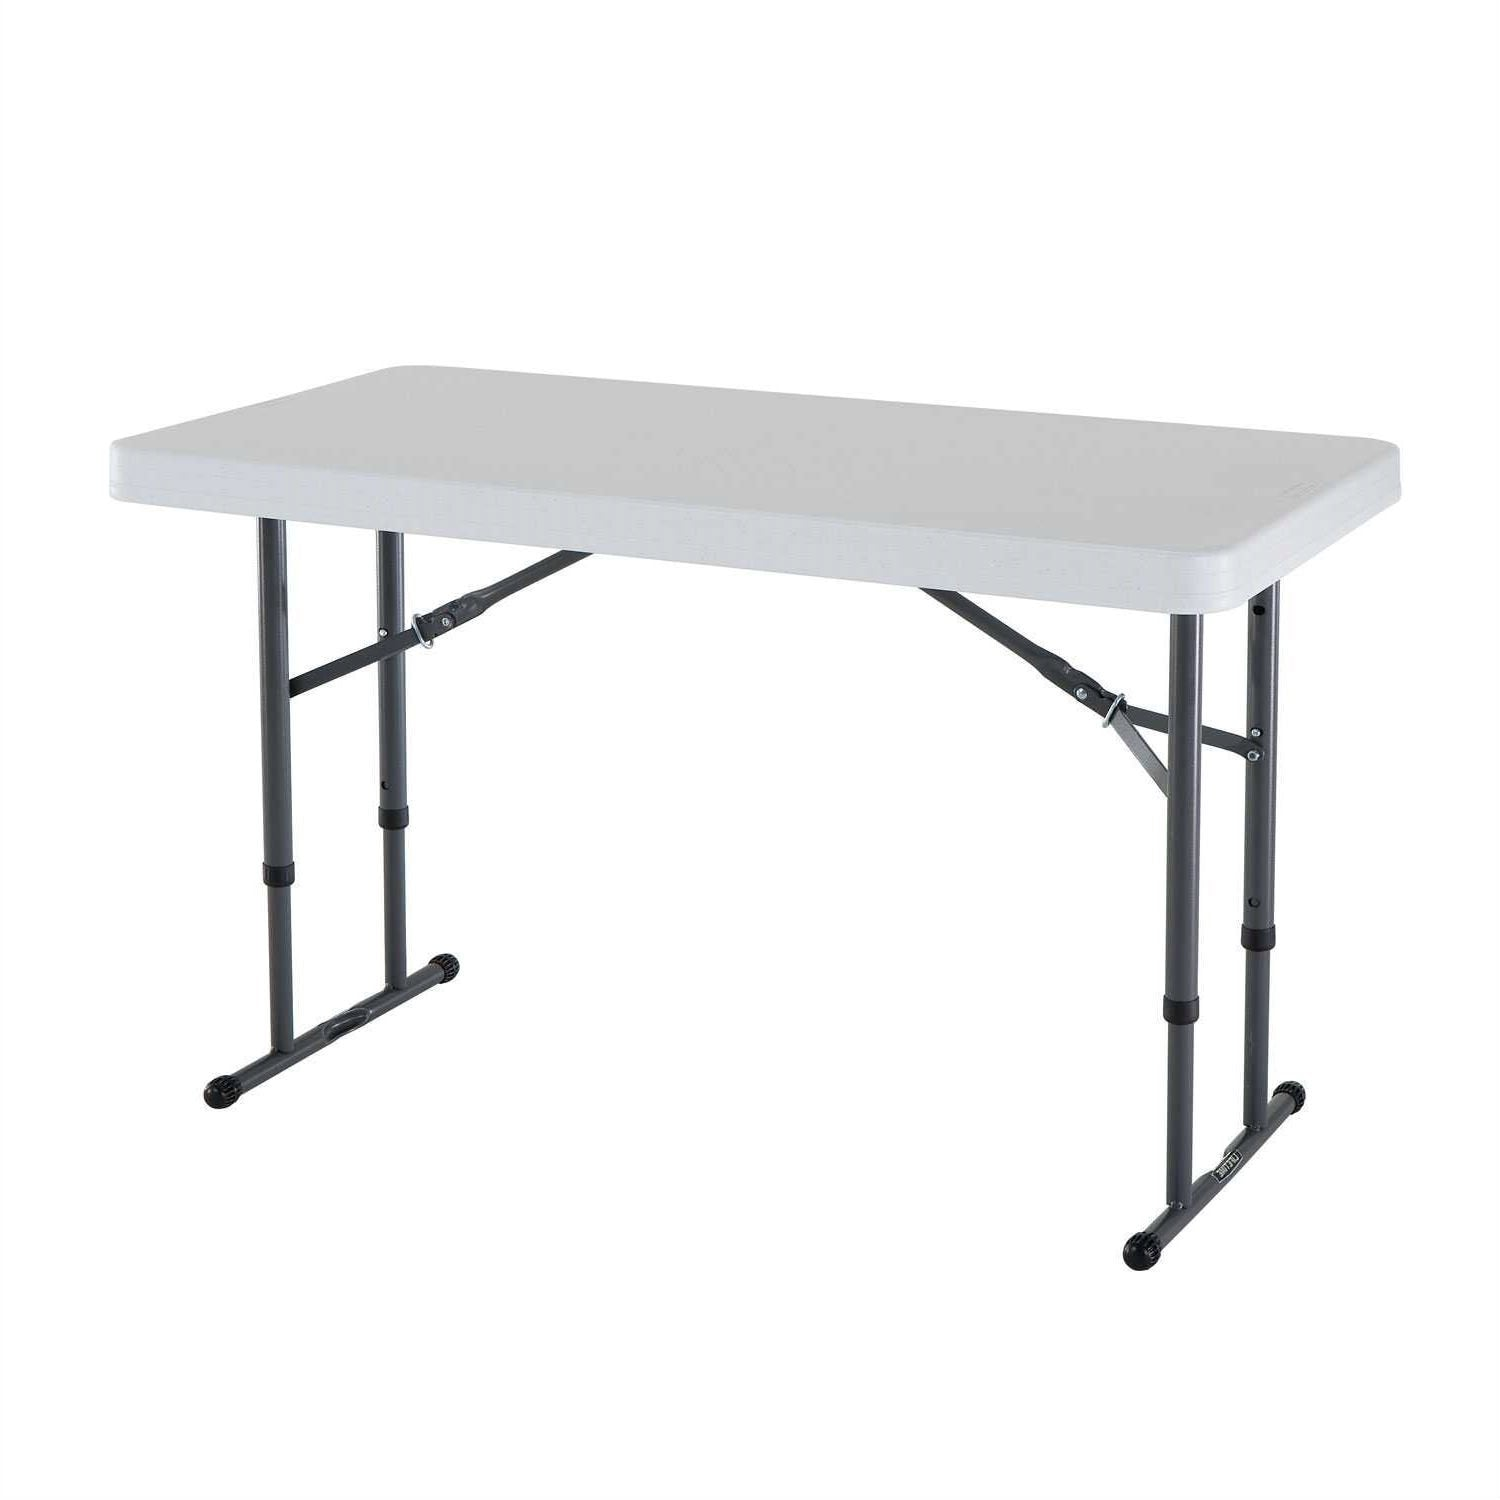 4 foot adjustable height folding table - Adjustable Height 4 Foot Commercial Folding Table With White Hdpe Top